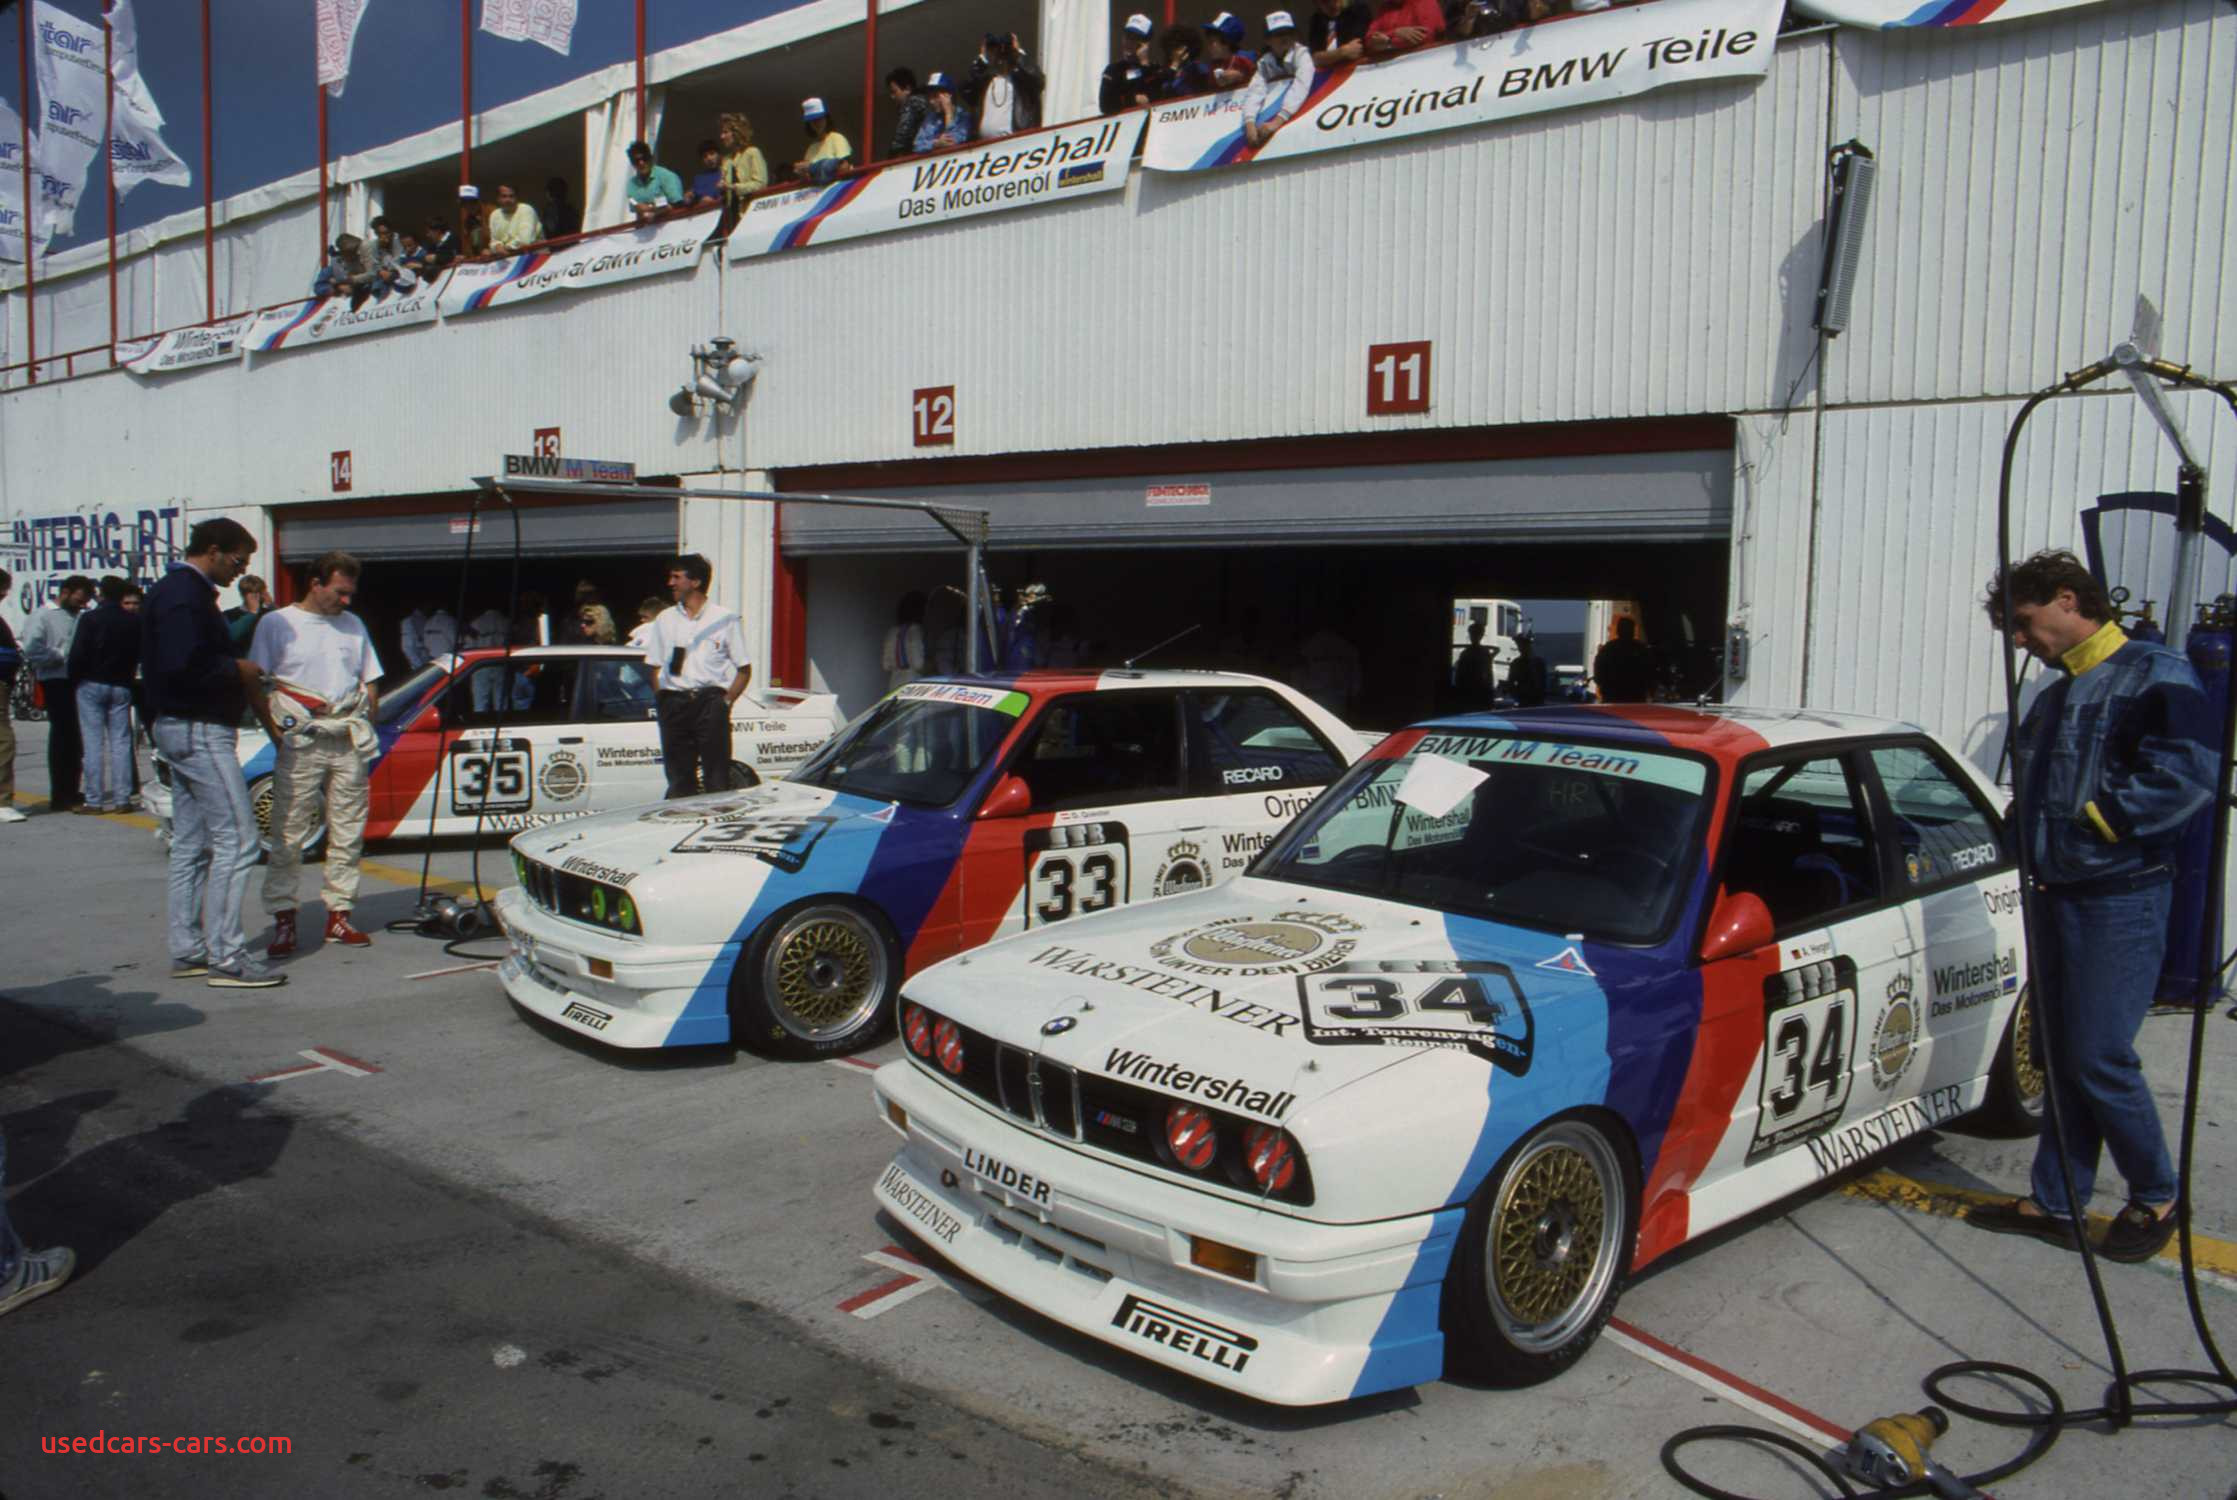 Bmw M3 1988 Elegant 26th May 2014 Archive Linder Team Bmw M3 Dtm 1988